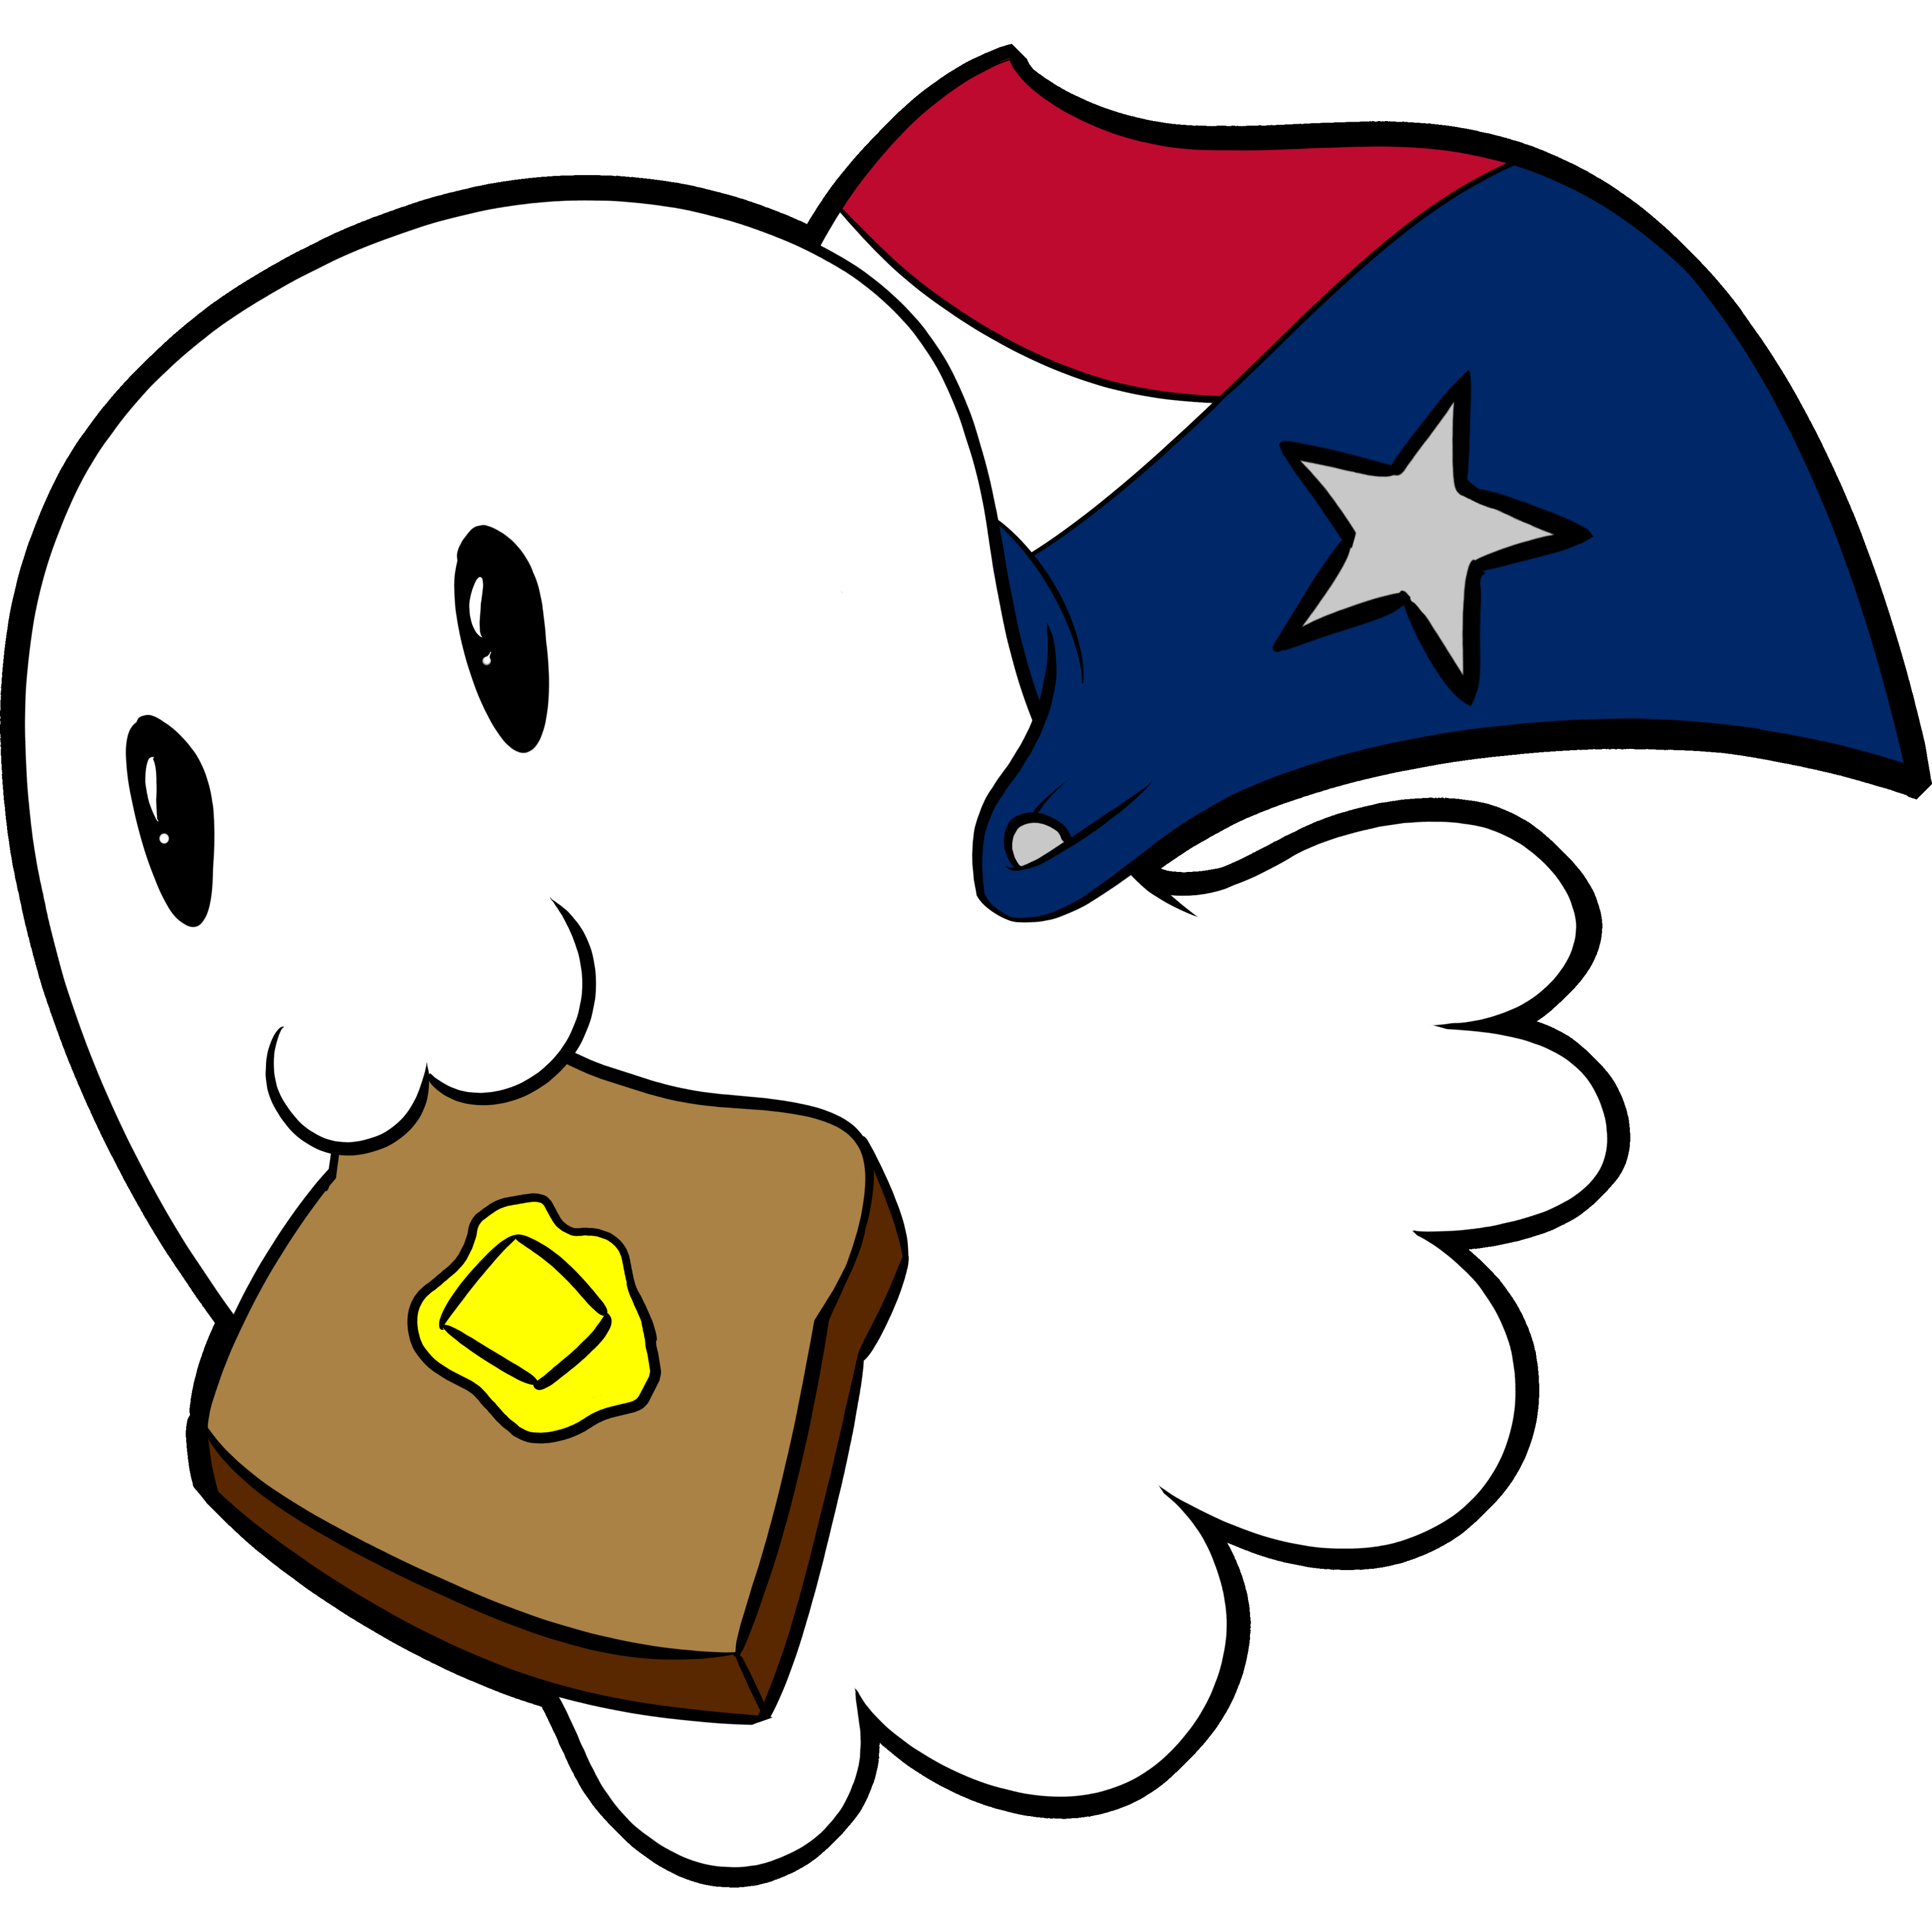 GhostfromTexas